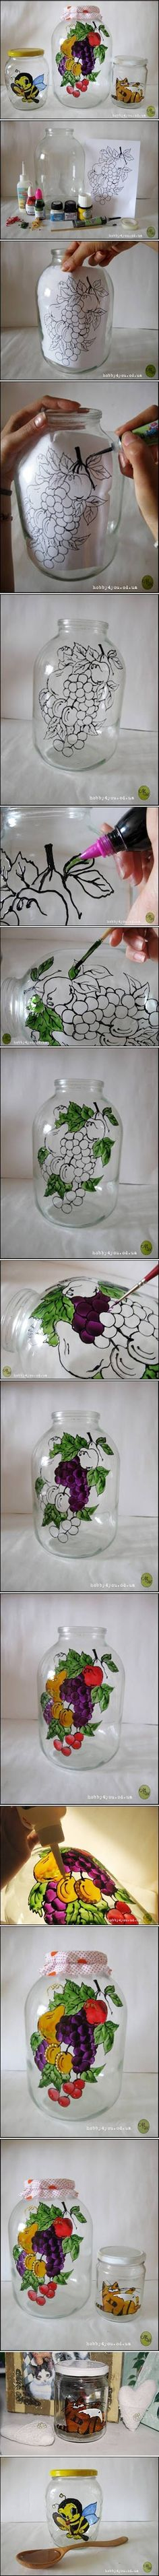 Jar Art DIY